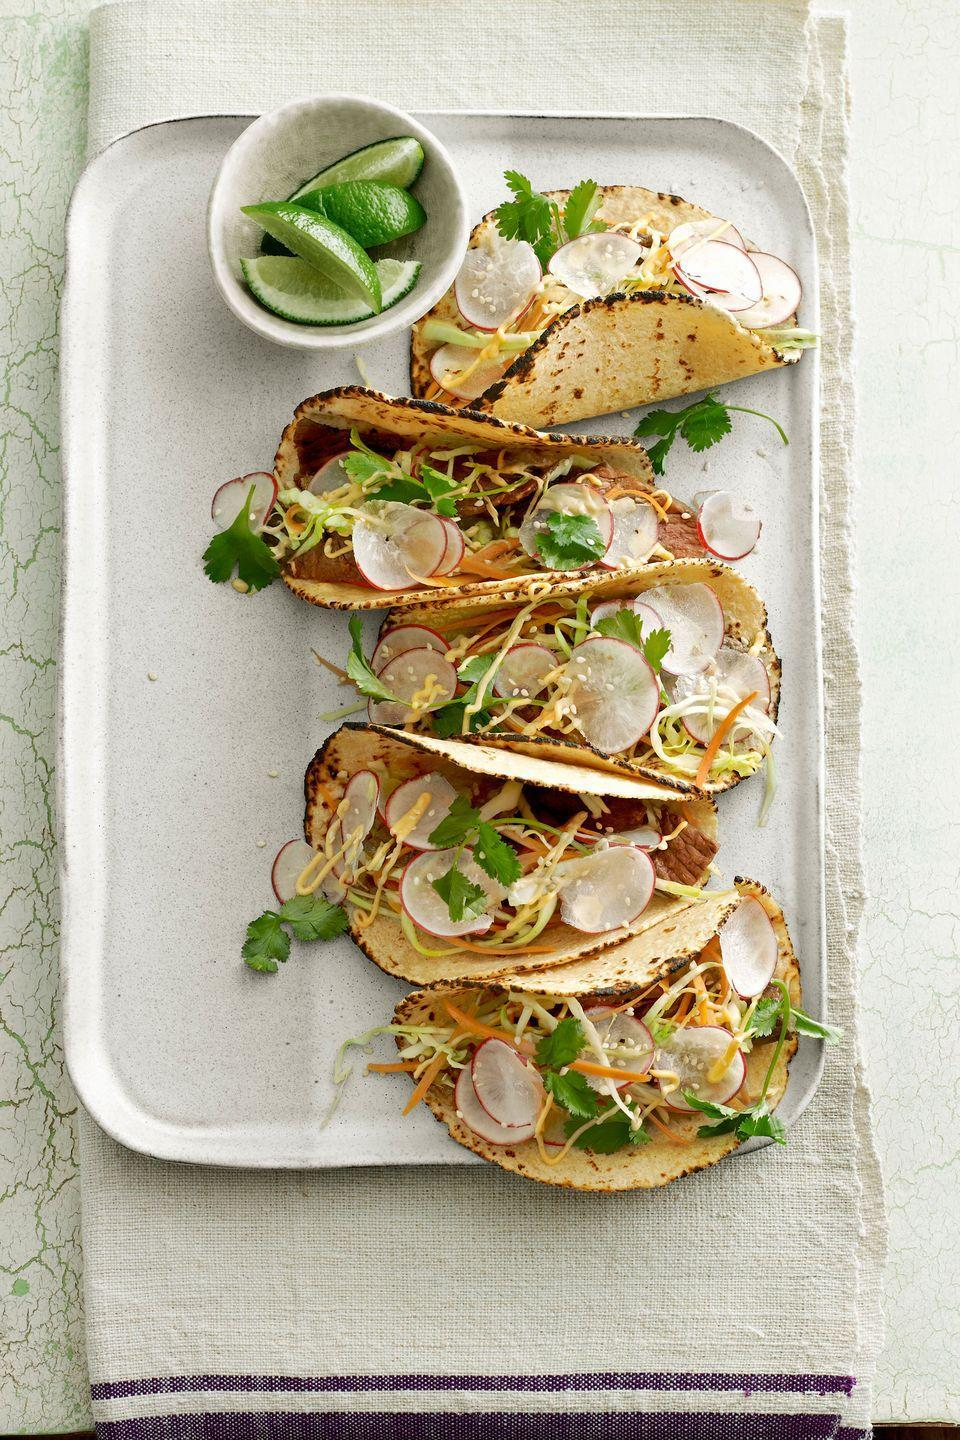 """<p>Try juicy Thai-marinated steak for a new spin on usual tacos. Plus, these are ready in just 30 minutes! </p><p><strong><a href=""""https://www.countryliving.com/food-drinks/recipes/a4169/thai-steak-tacos-recipe-clv0513/"""" rel=""""nofollow noopener"""" target=""""_blank"""" data-ylk=""""slk:Get the recipe"""" class=""""link rapid-noclick-resp"""">Get the recipe</a>.</strong></p>"""